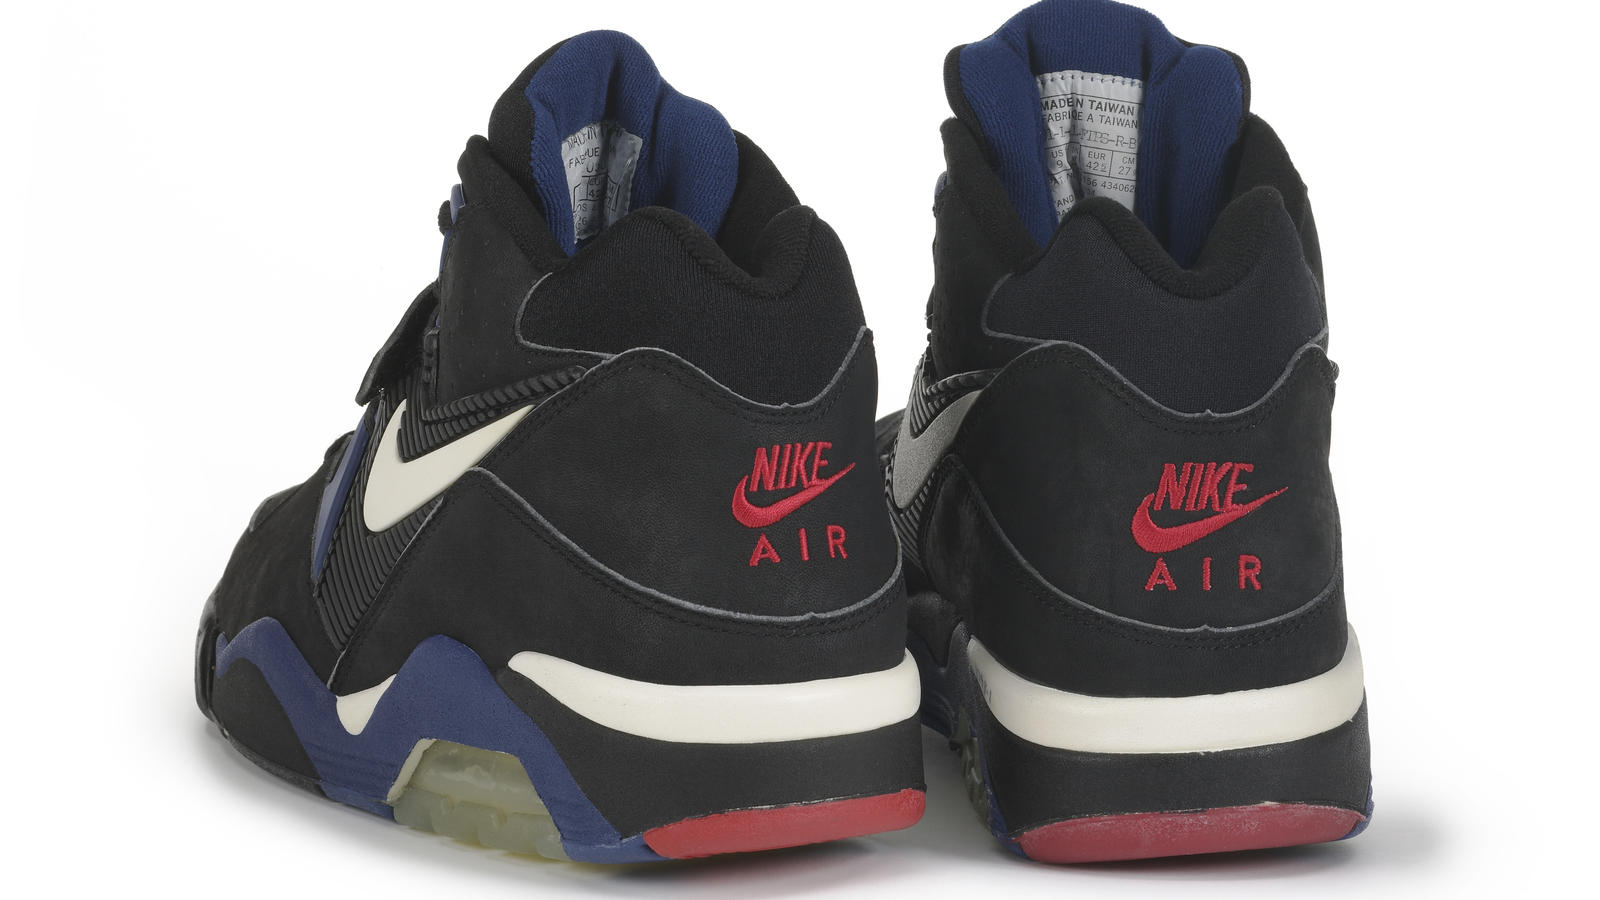 Espejismo Cuna Pila de  Nike Air Force 180 Low - Nike News